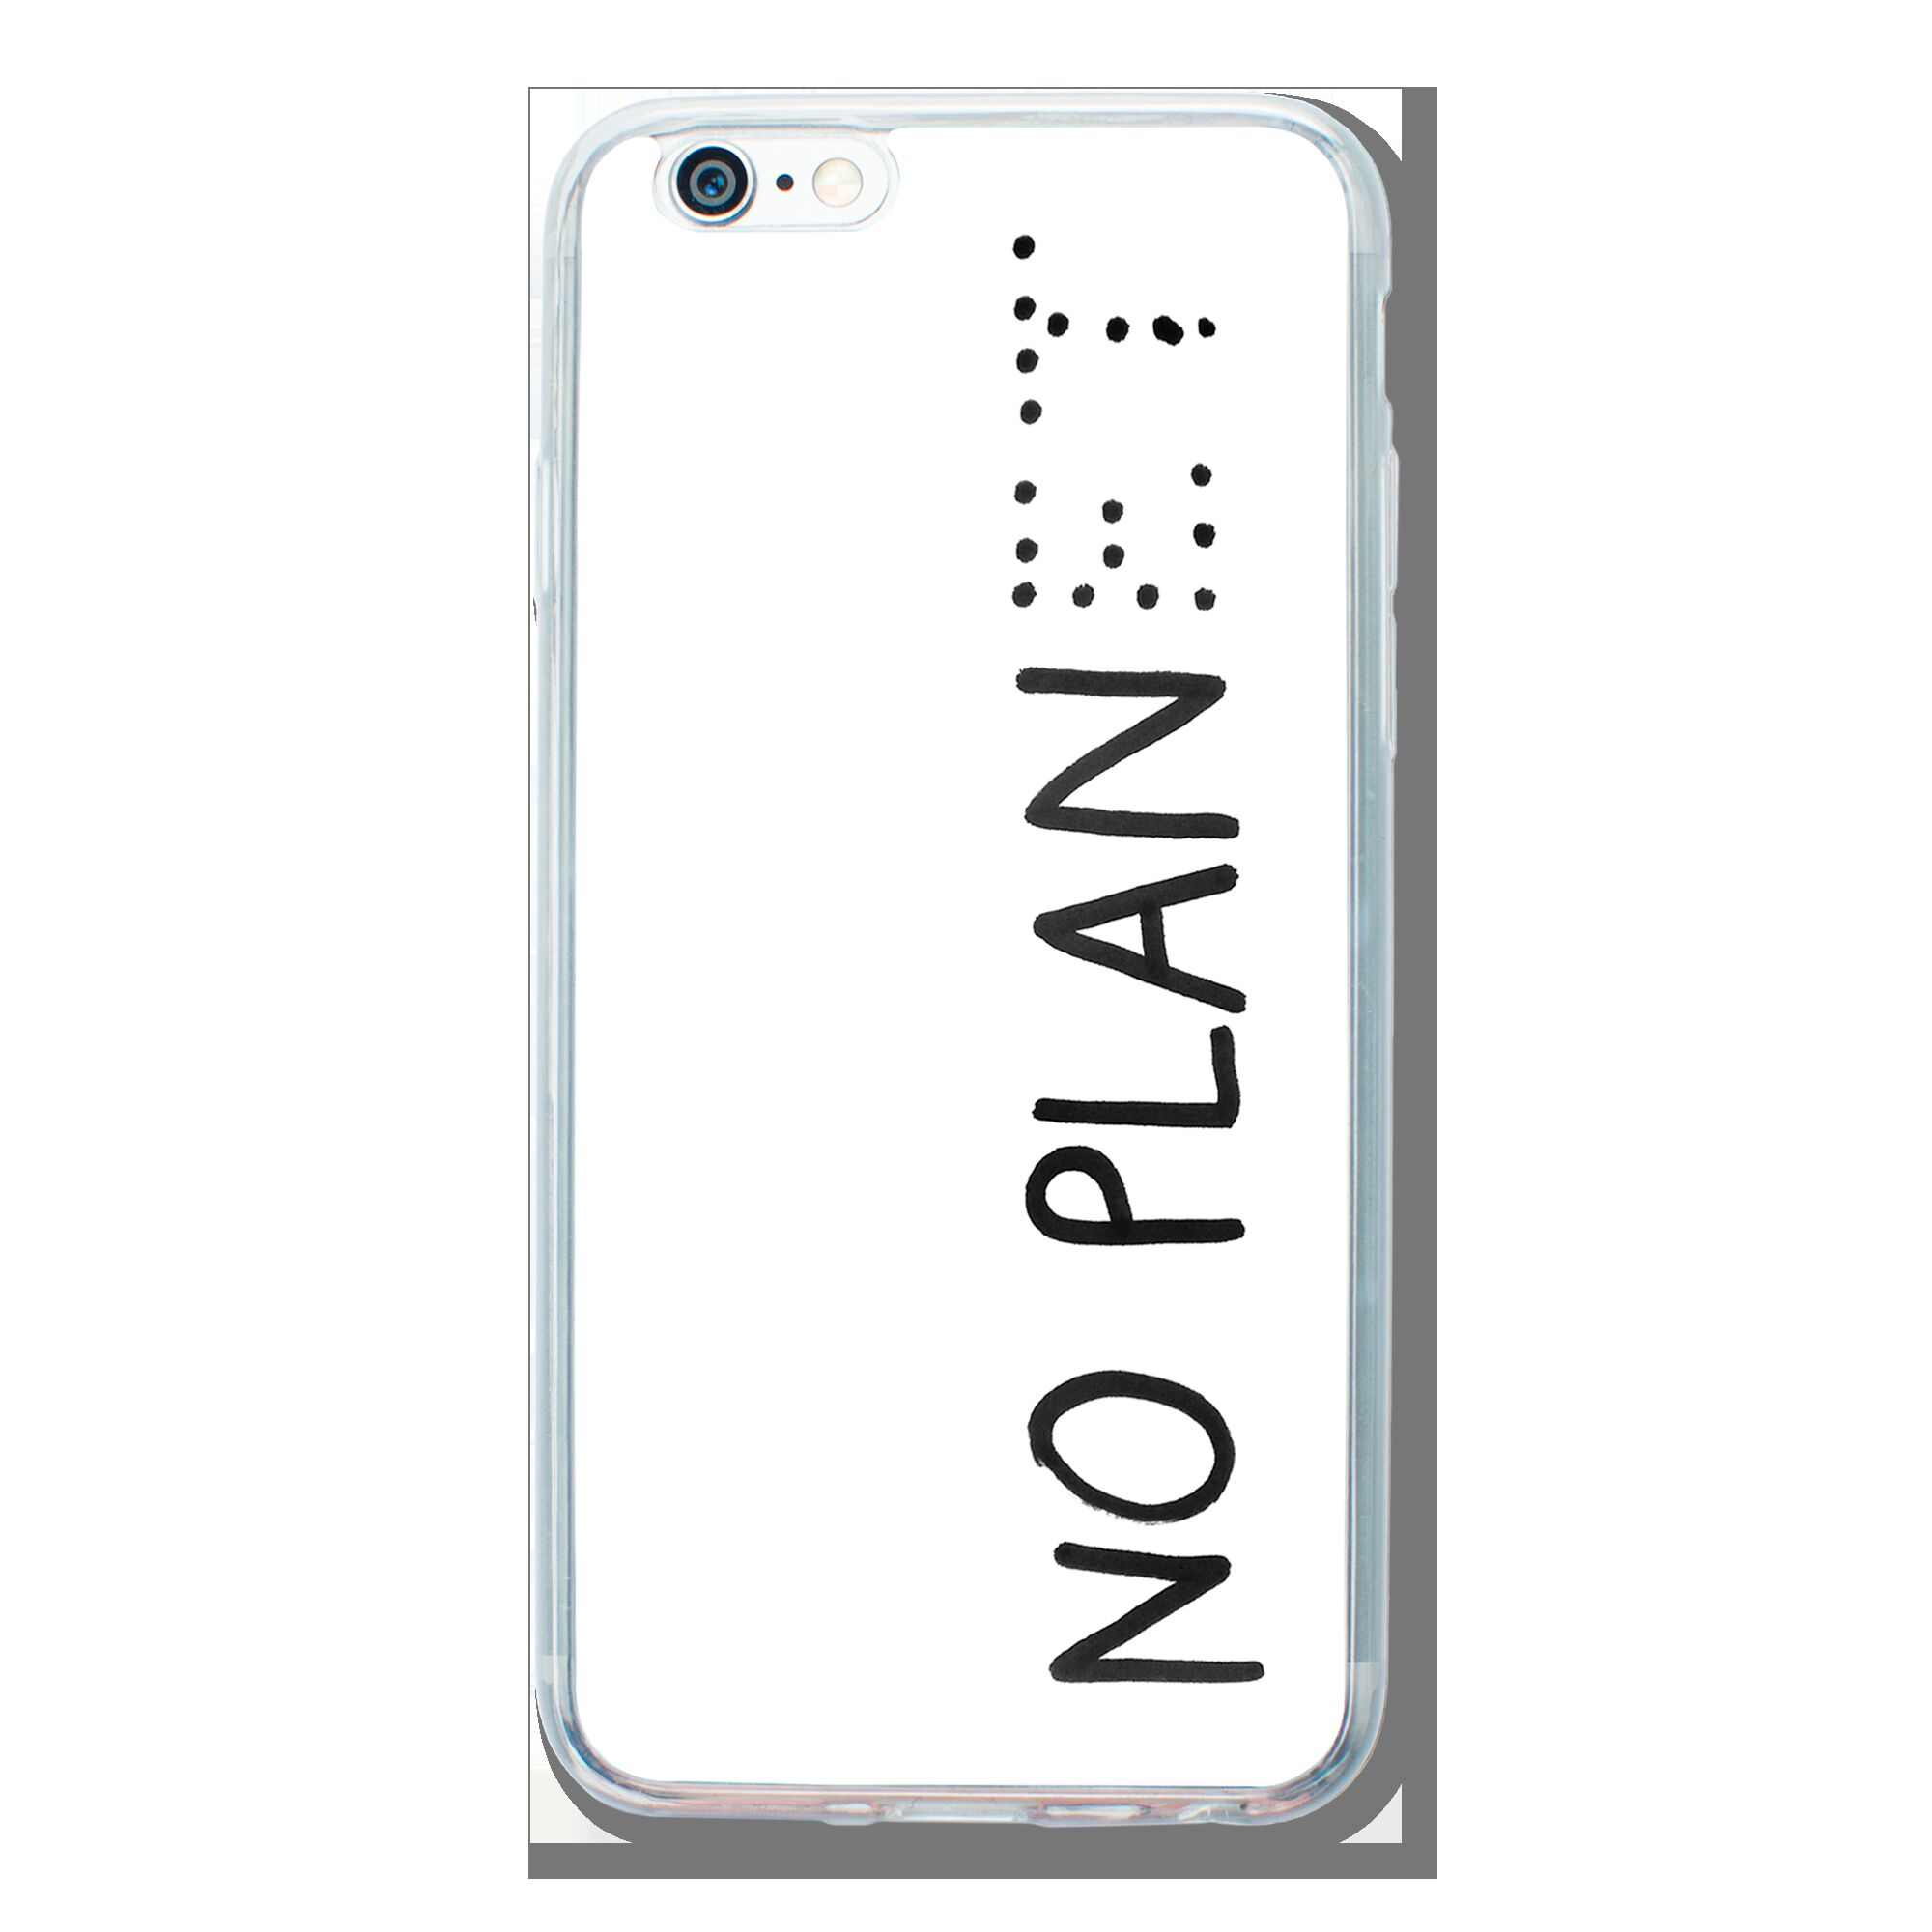 NO PLANET iPhone cover